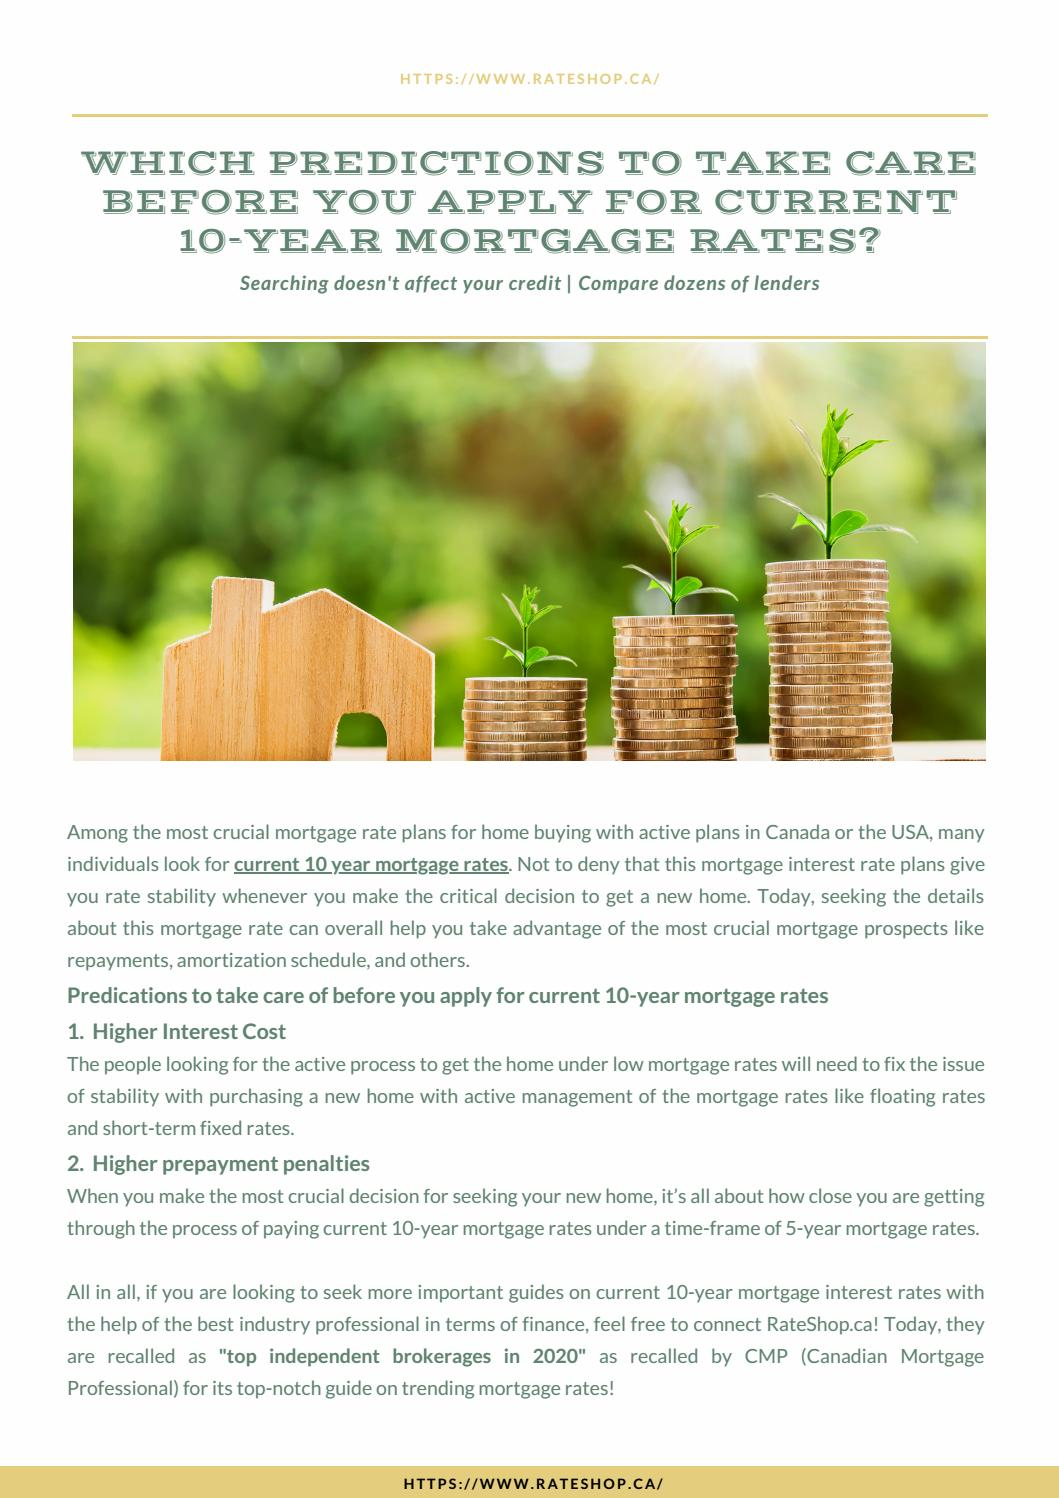 Which Predictions to Take Care before you apply for current 10-year mortgage rates?